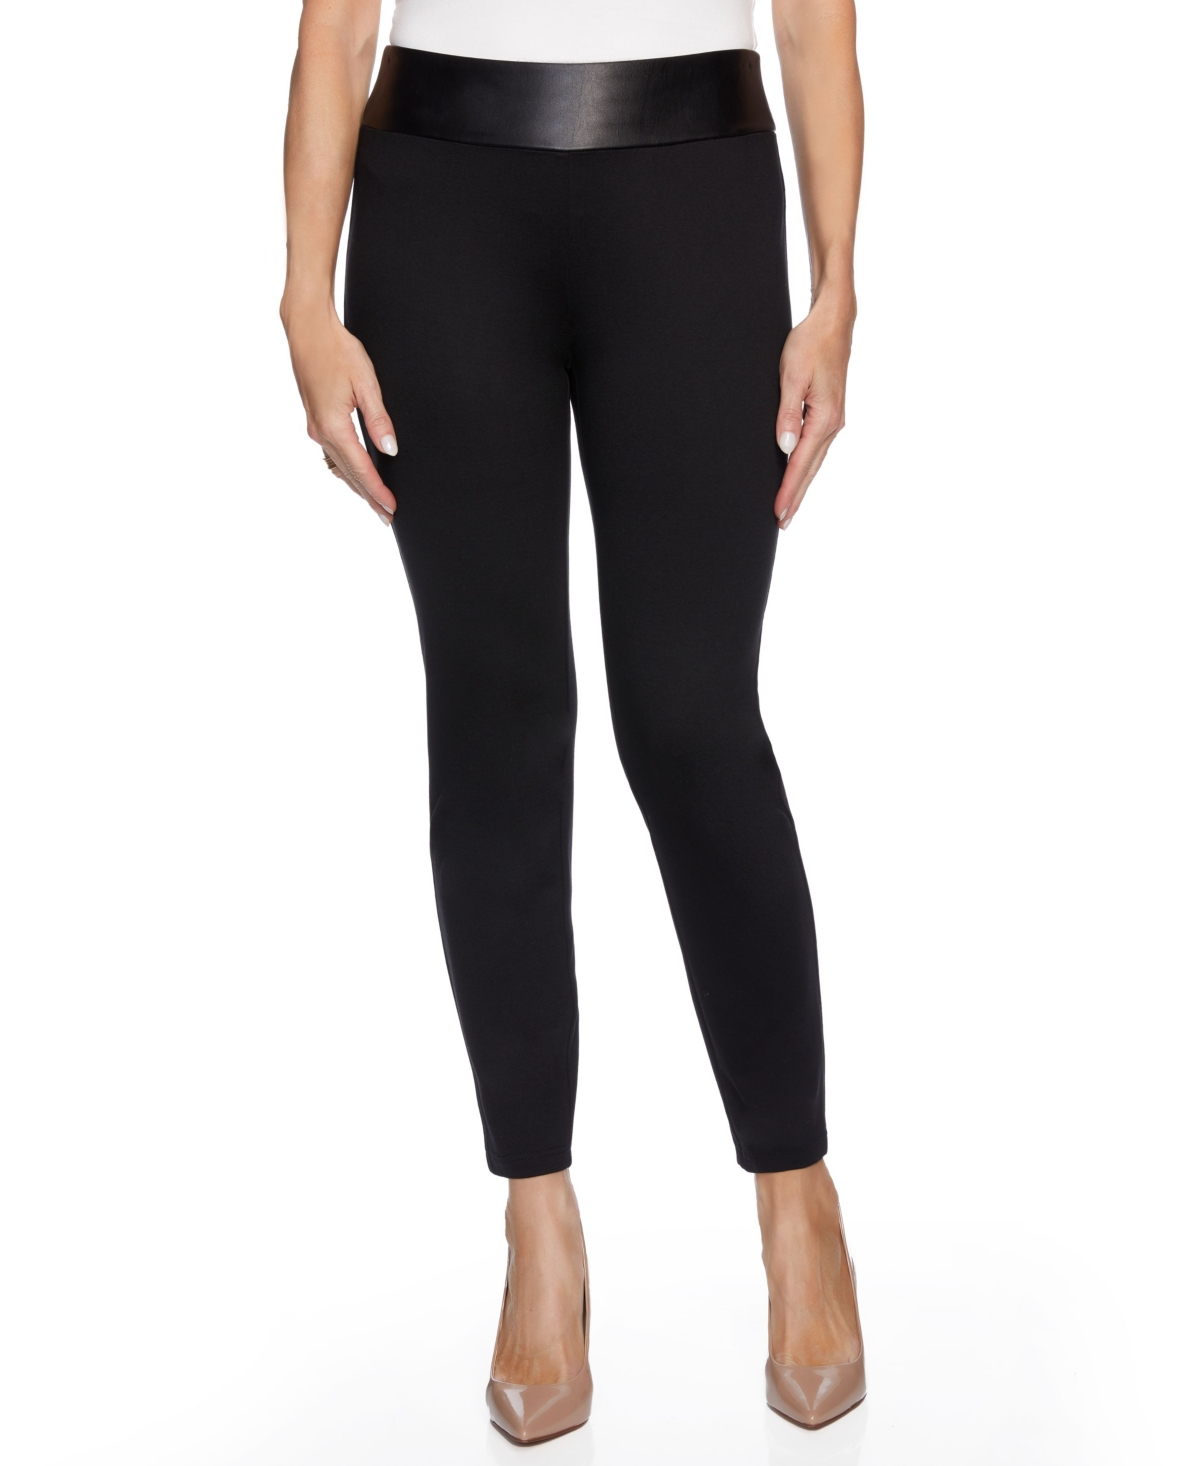 Women's Mixed Media Skinny Leg with Faux Leather Waistband Pants